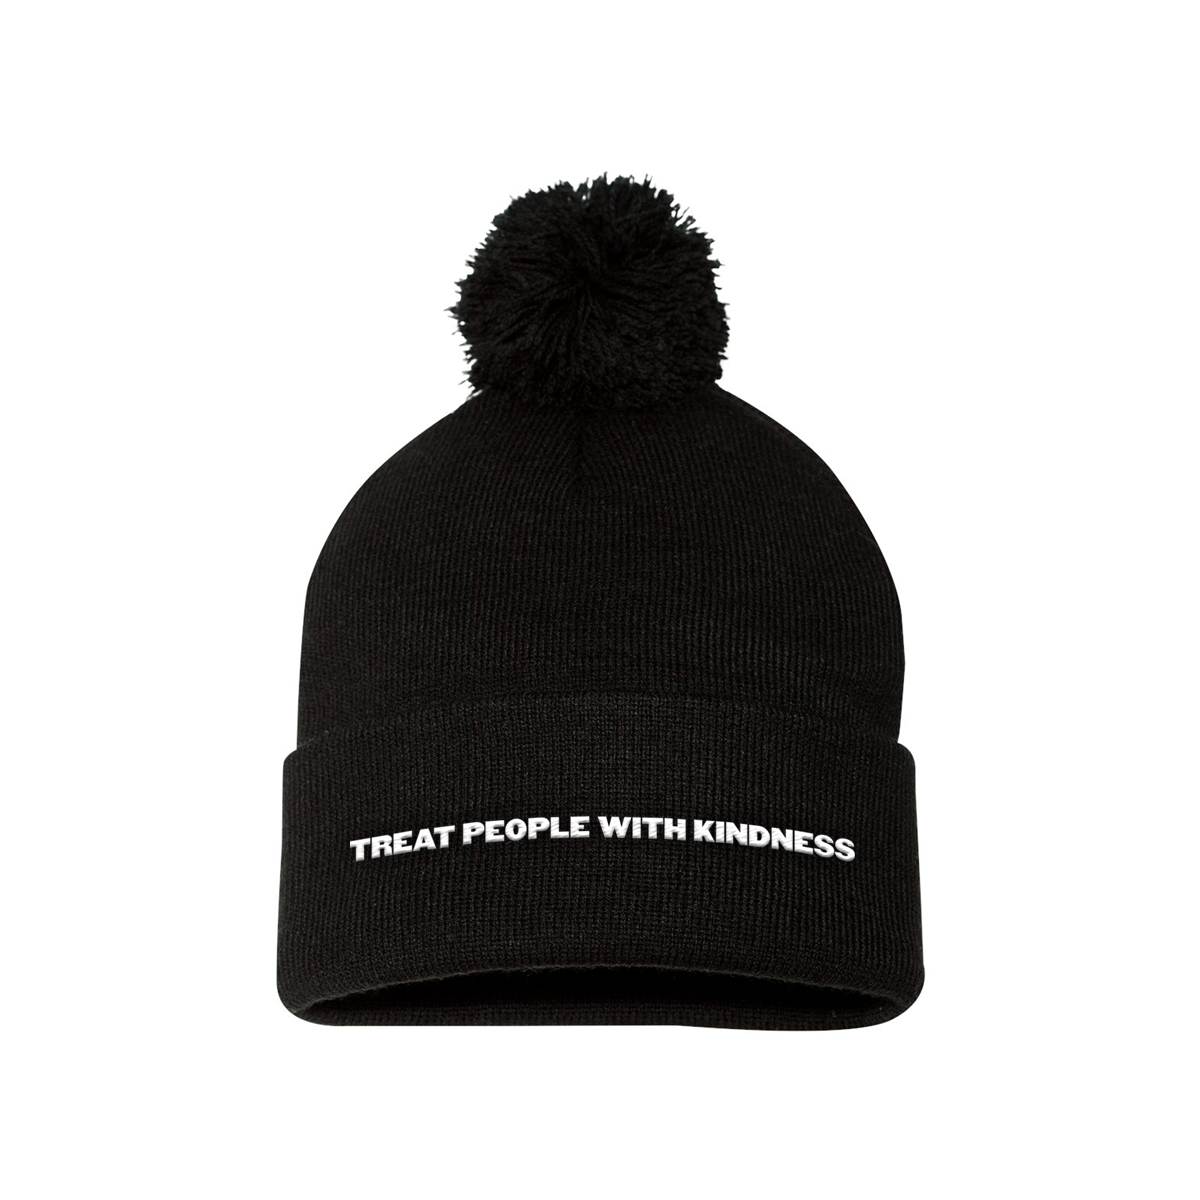 Treat People With Kindness Pom Beanie - Harry Styles UK